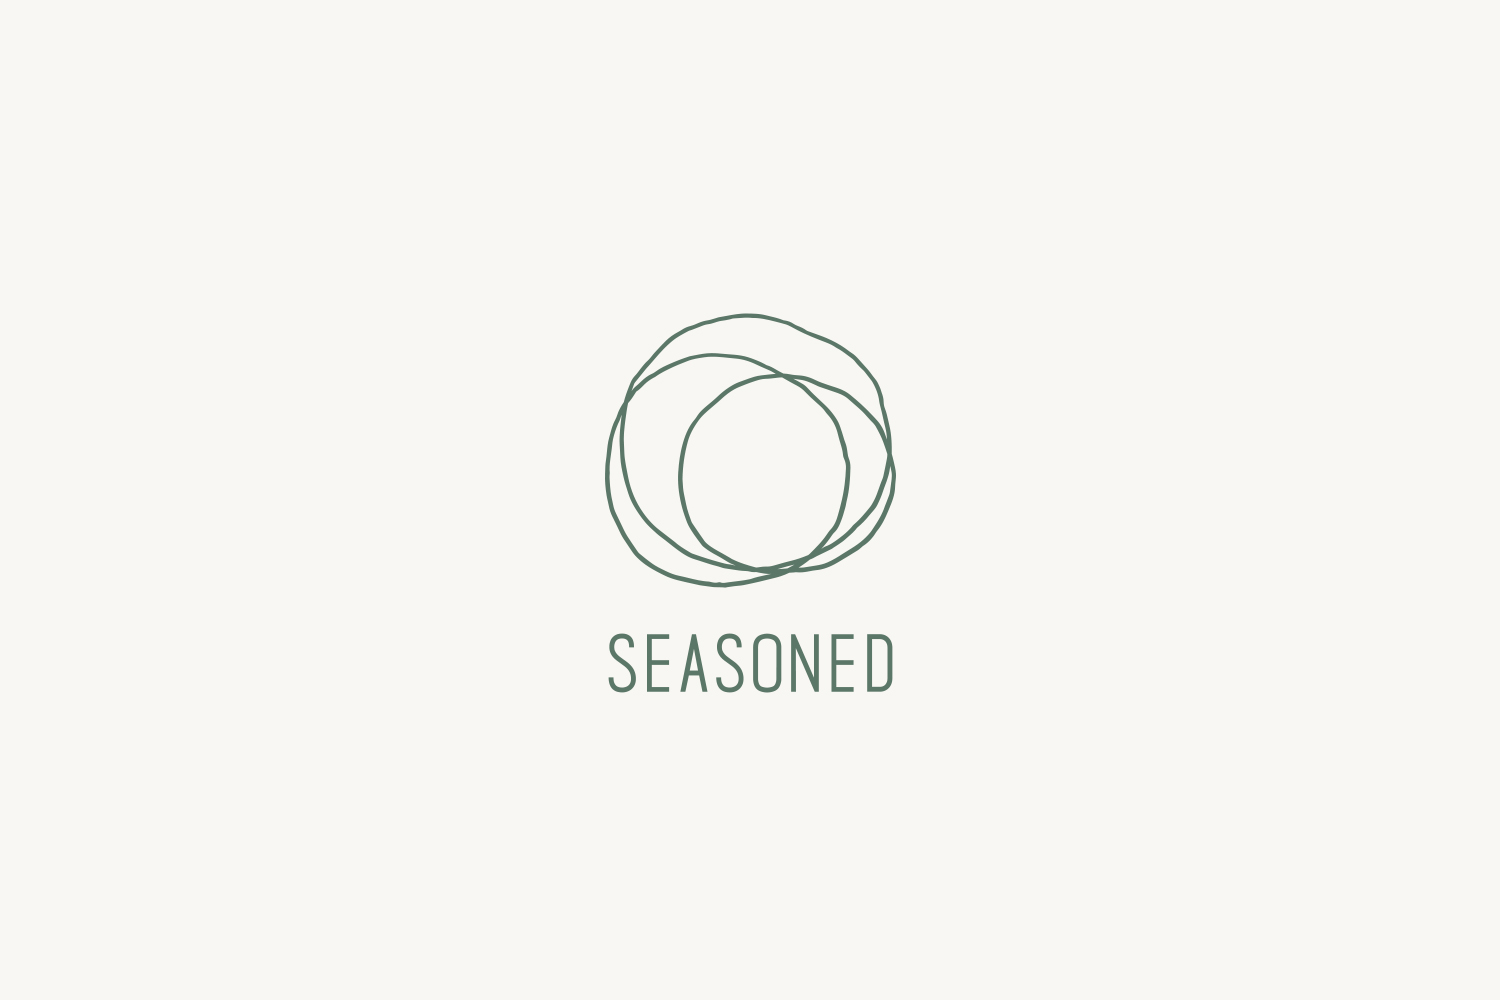 16.Becca_Allen_Seasoned_Logo.jpg